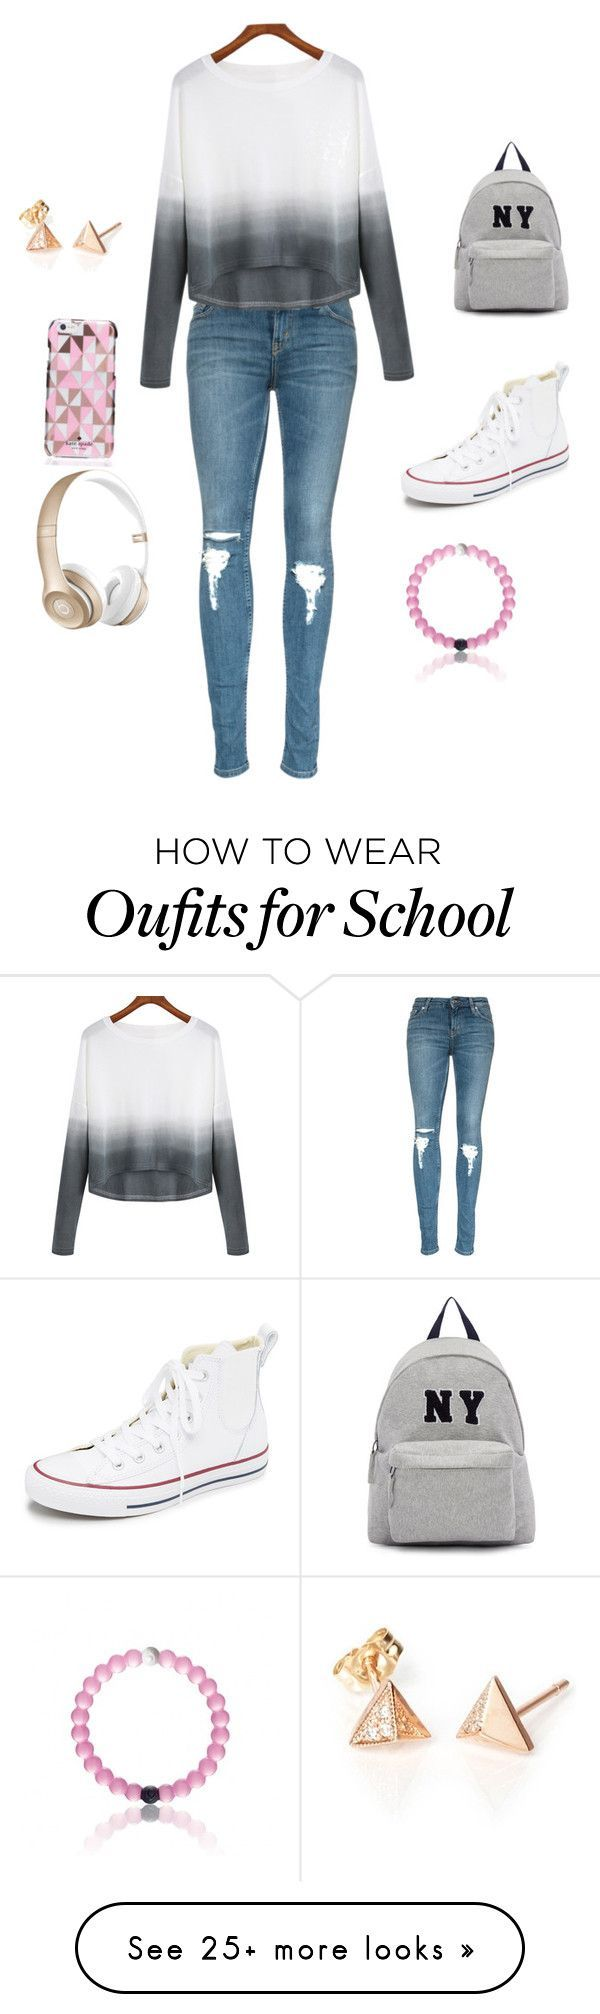 """""""School clothes"""" by sydneyhall131 on Polyvore featuring Mode, Converse, Joshua's, Kate Spade, Beats by Dr. Dre, women's clothing, women's fashion, women, female und woman"""